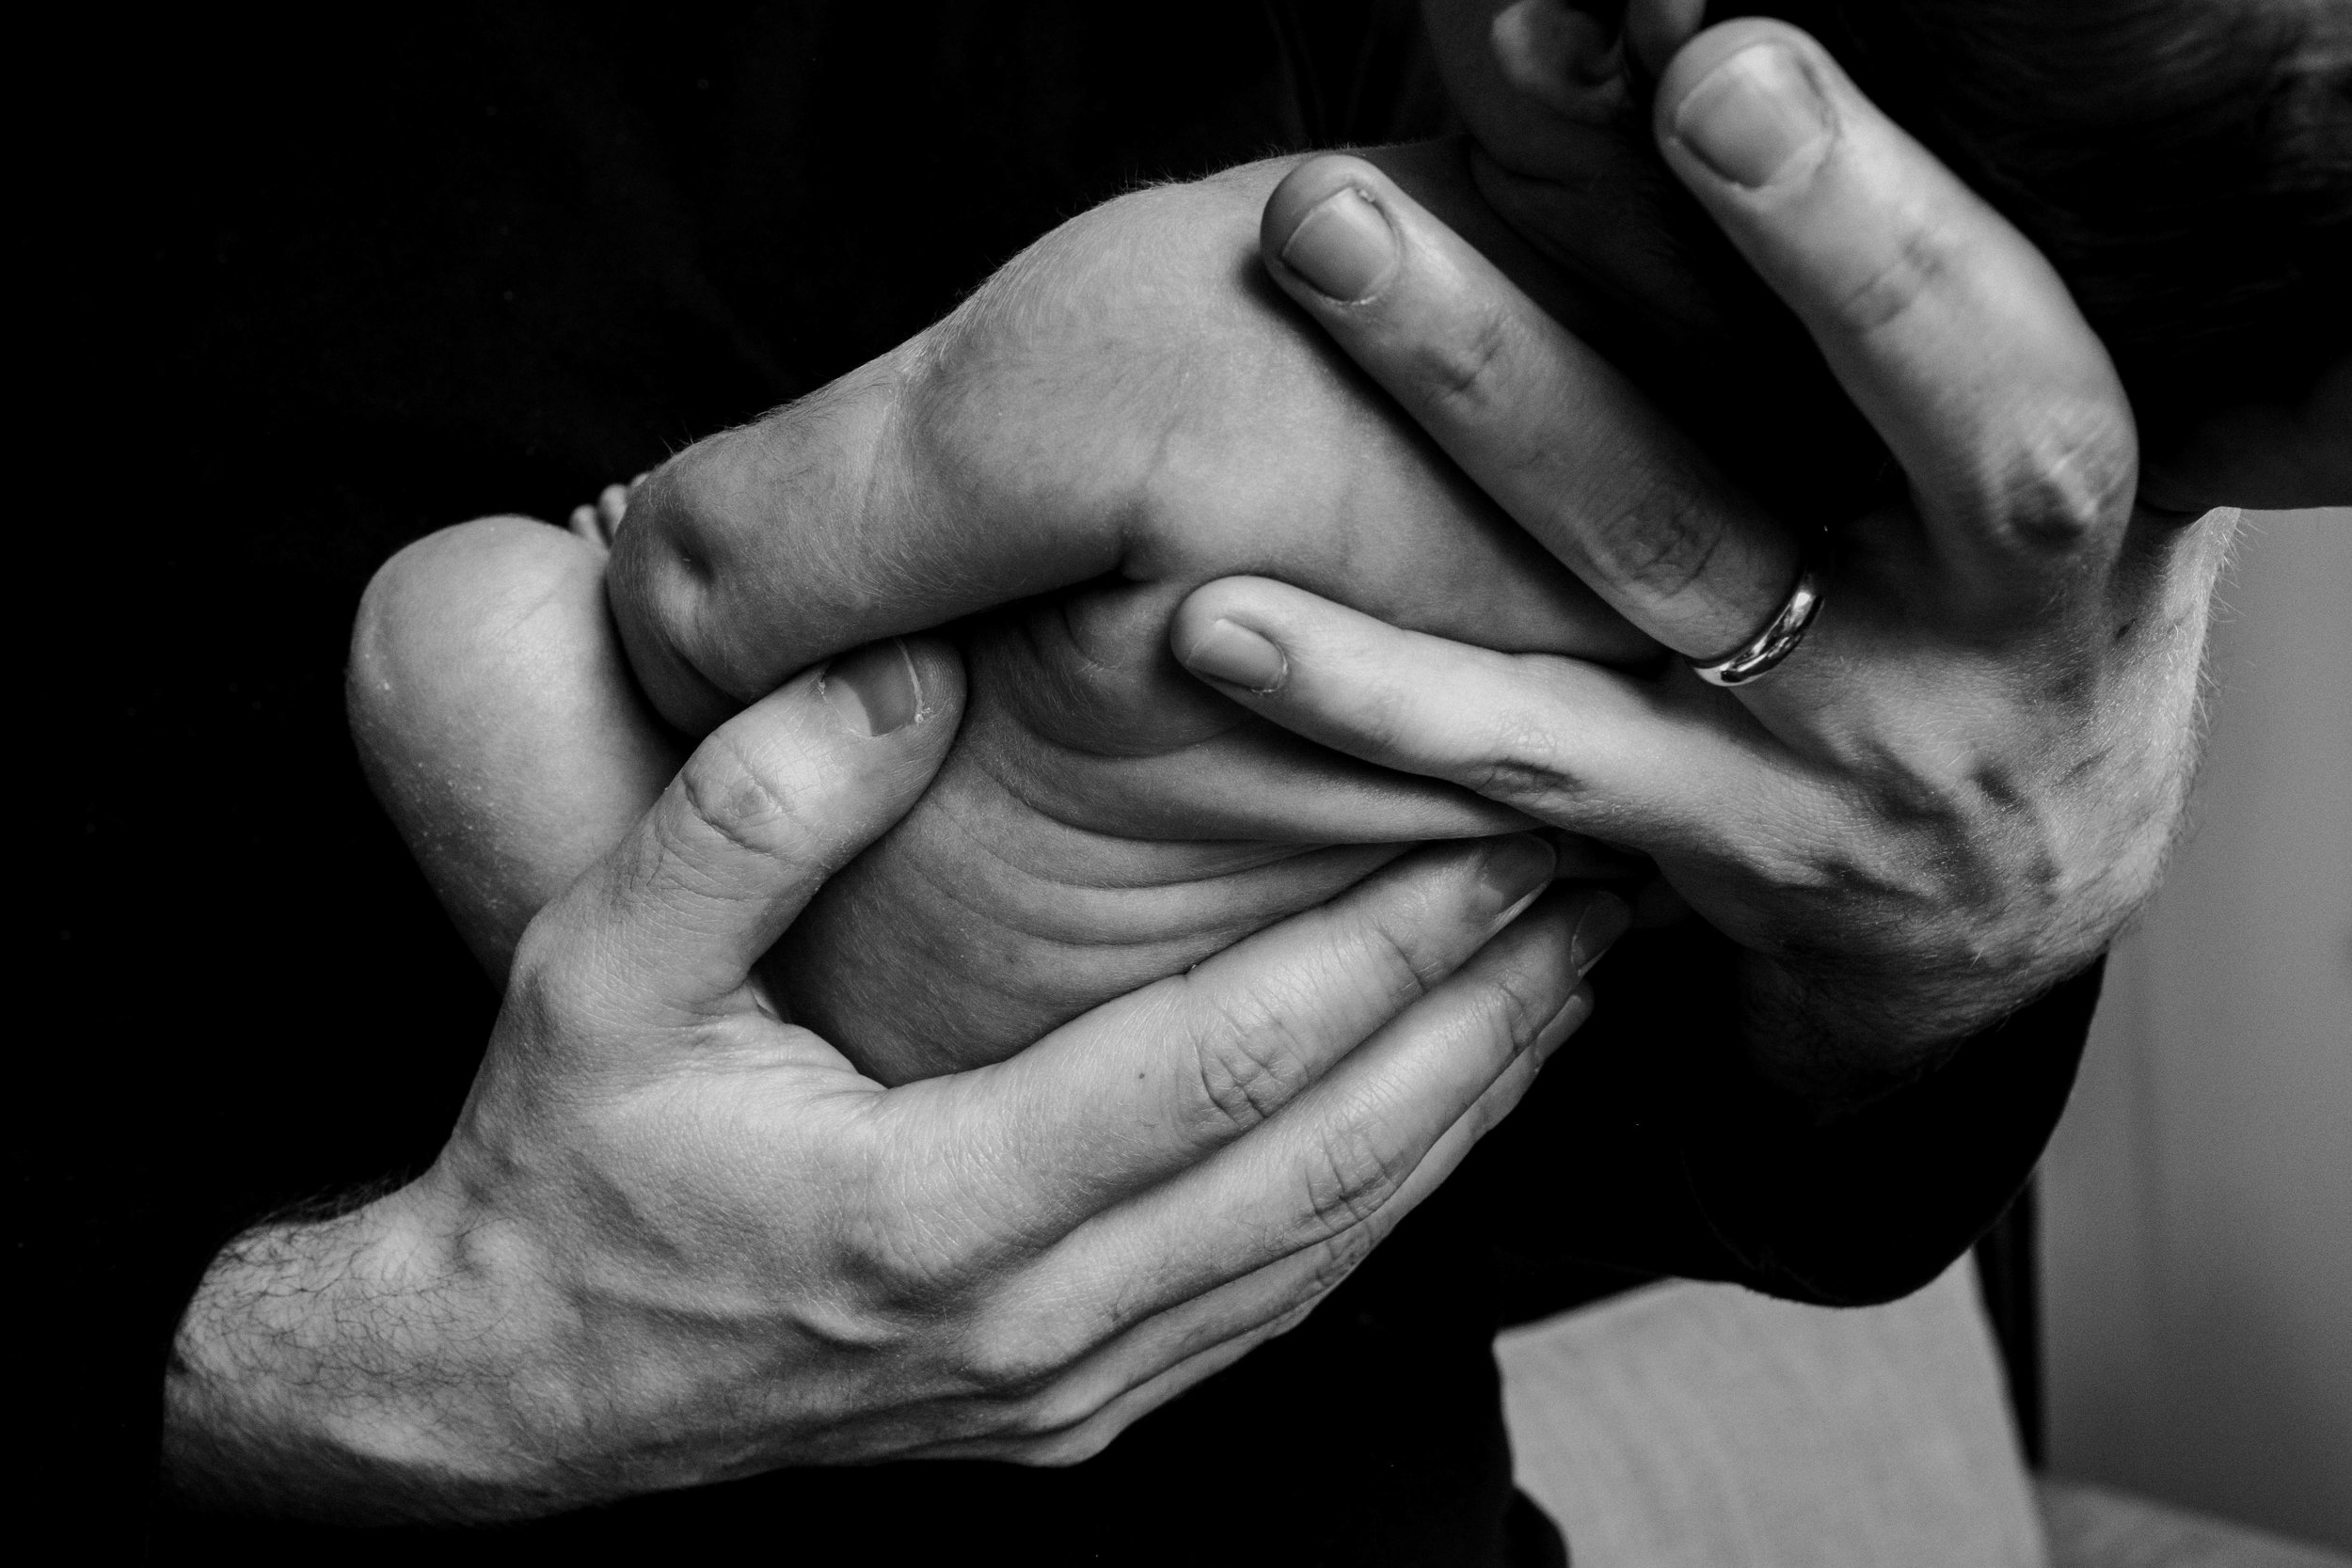 A father holds his tiny newborn daughter in his large hands.